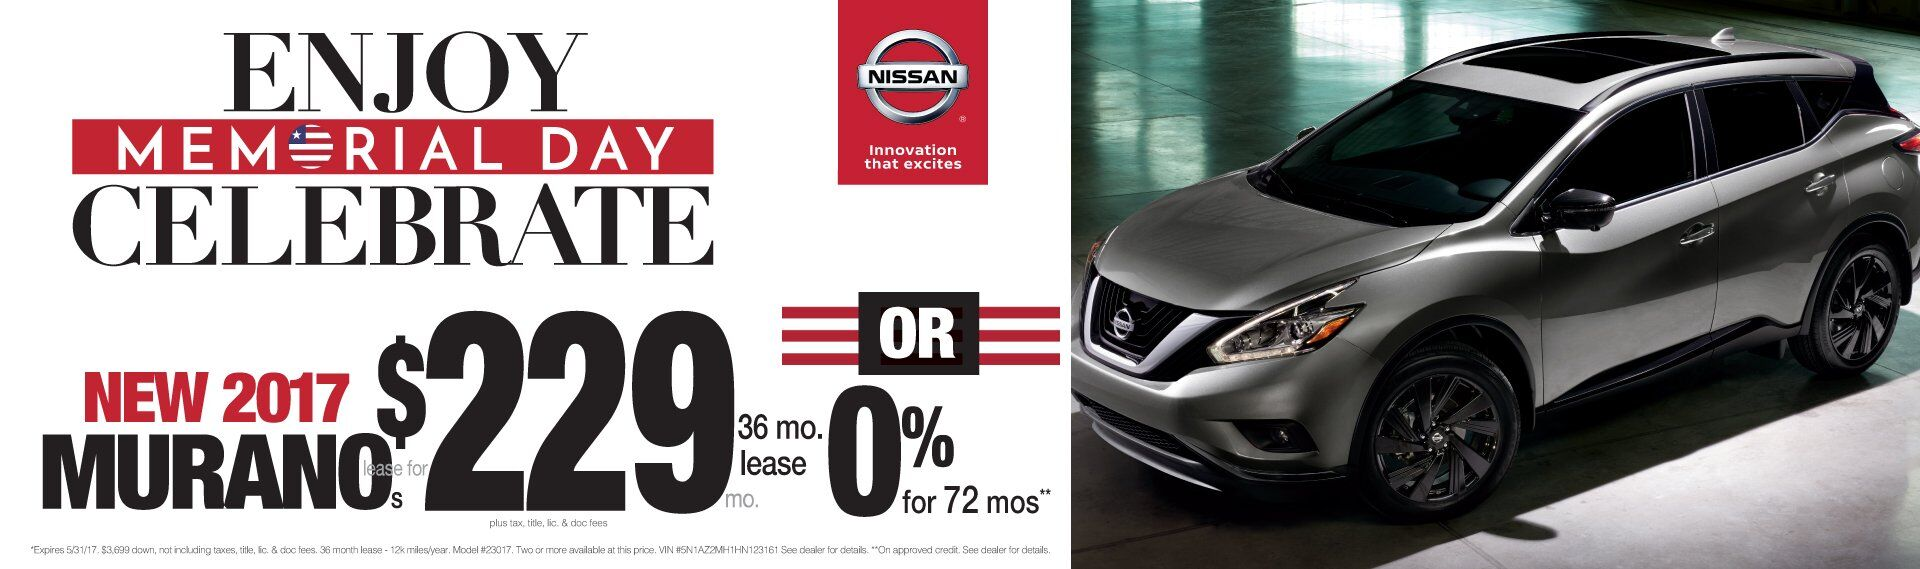 Memeorial Day Savings All Month Long on The Nissan Murano